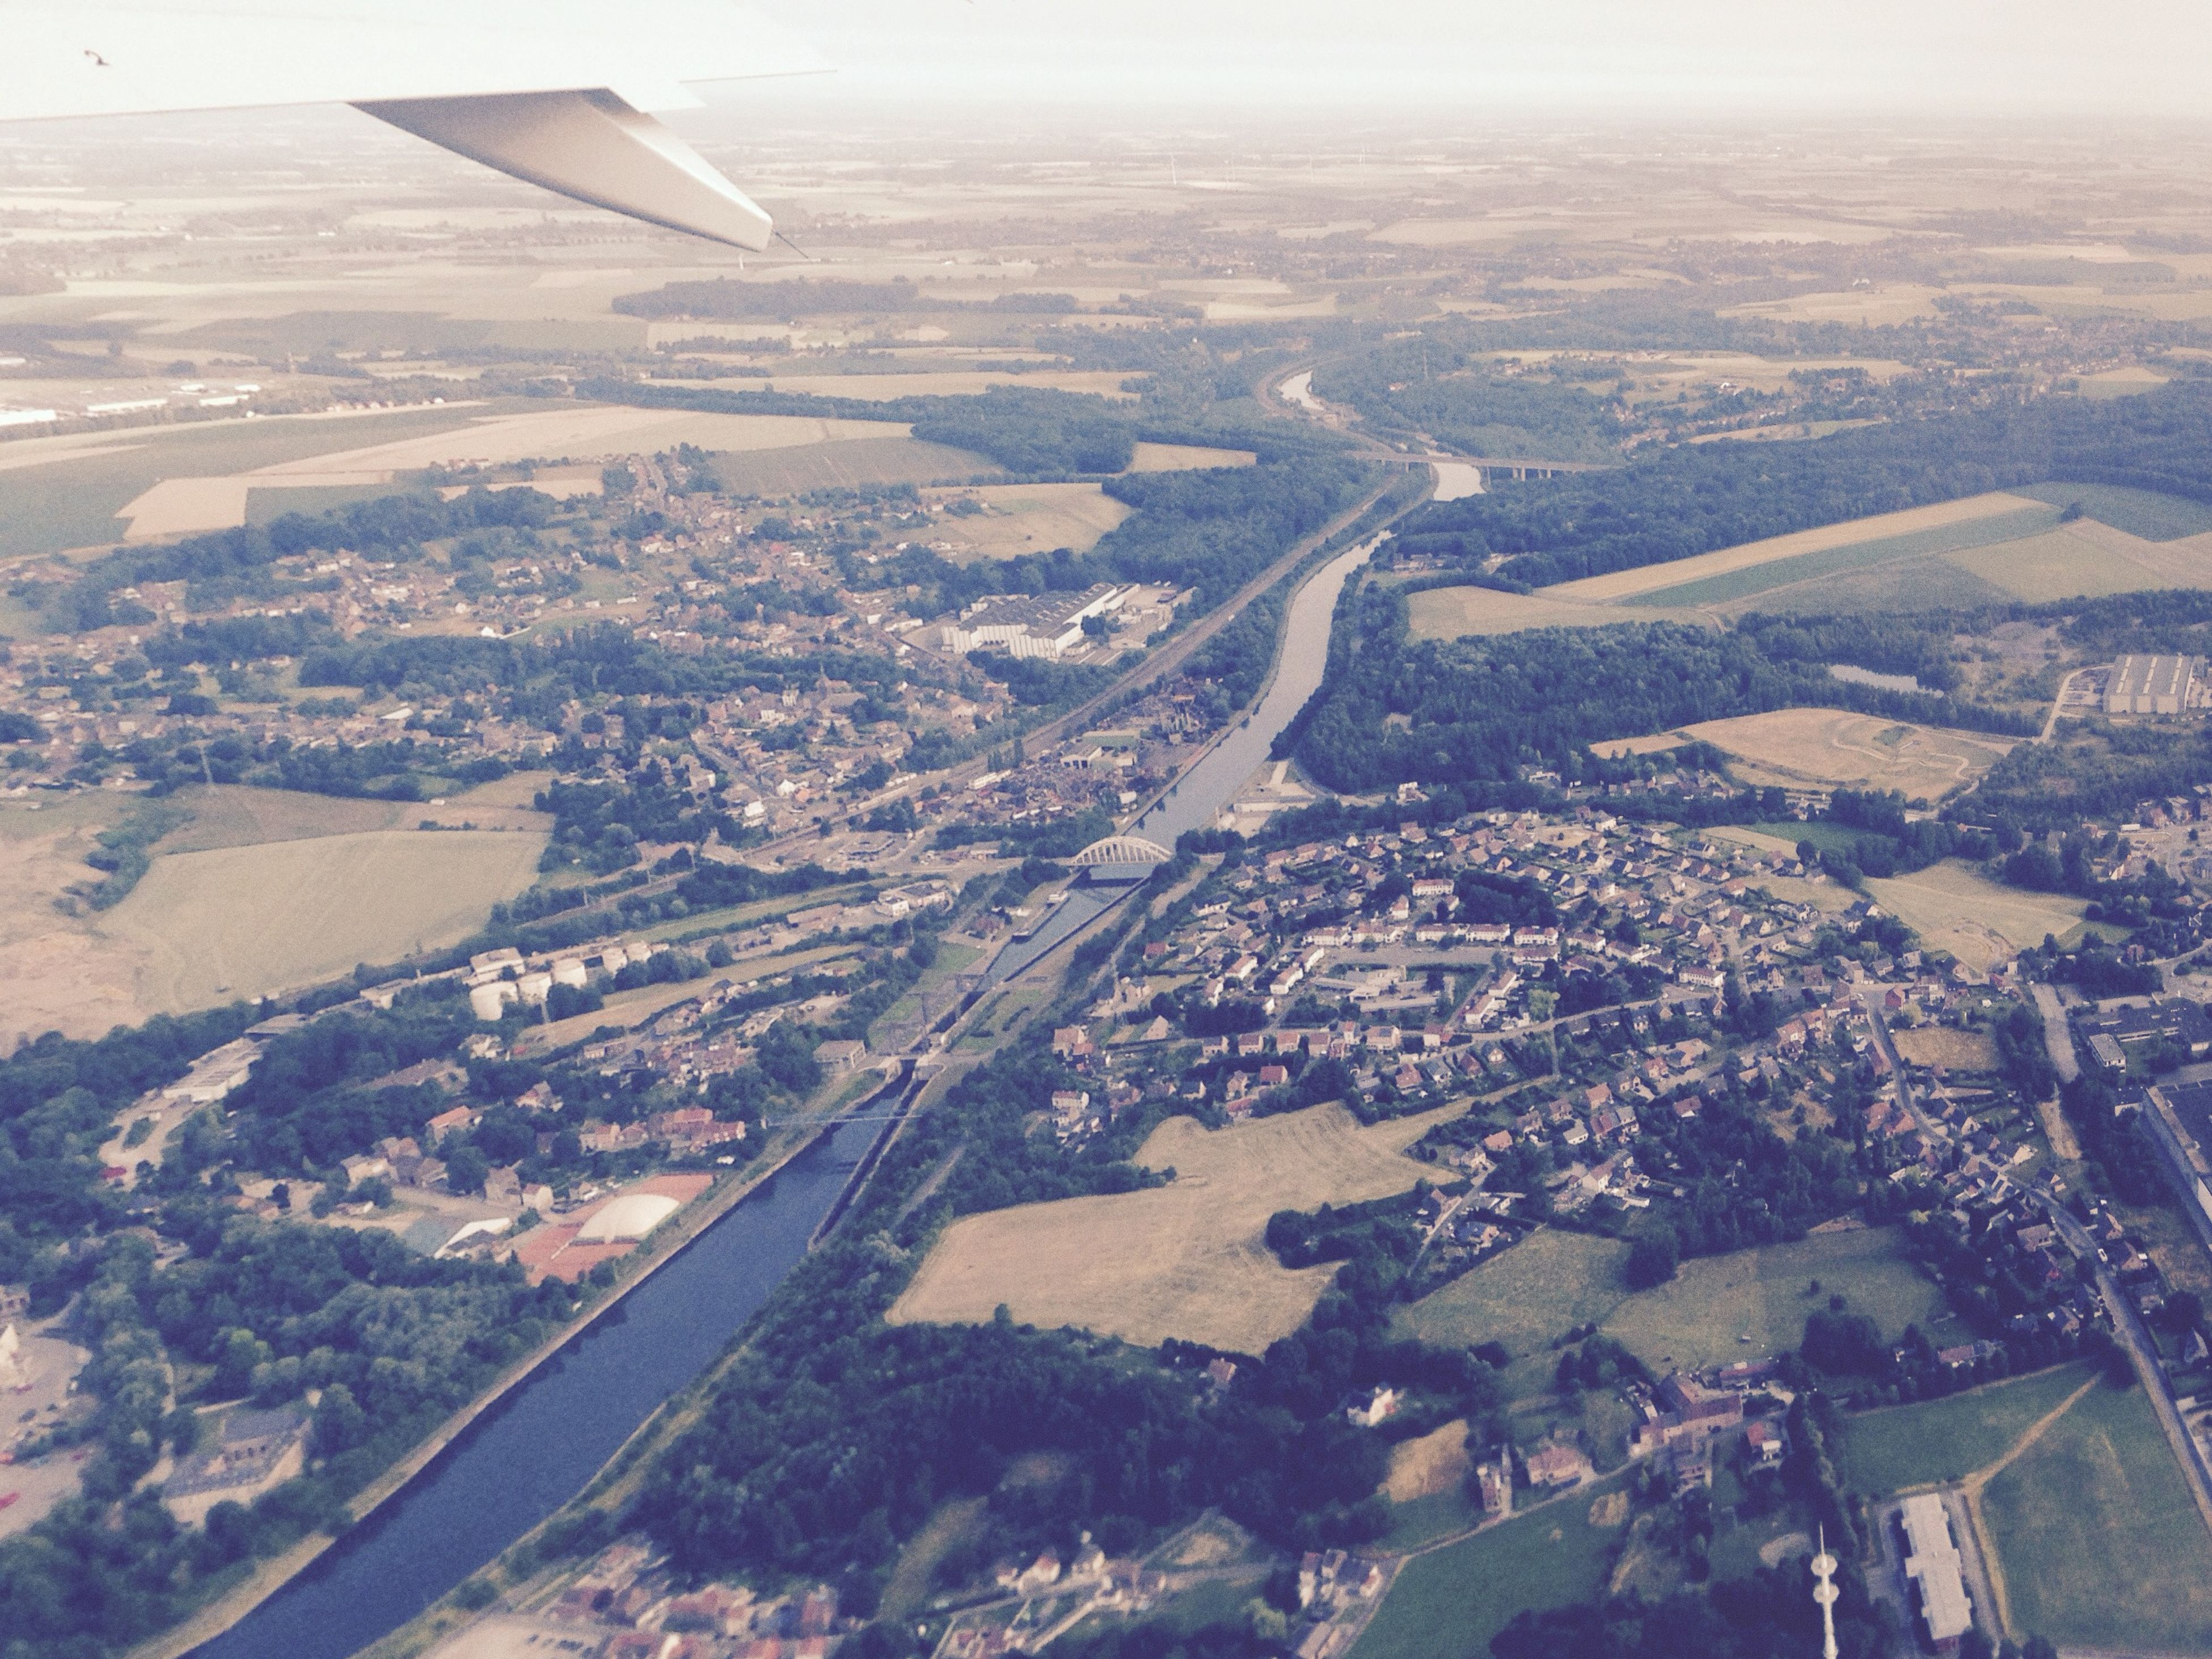 flying, aerial view, airplane, air vehicle, transportation, landscape, aircraft wing, mode of transport, mid-air, part of, cropped, high angle view, scenics, horizon over land, travel, nature, cityscape, on the move, sky, day